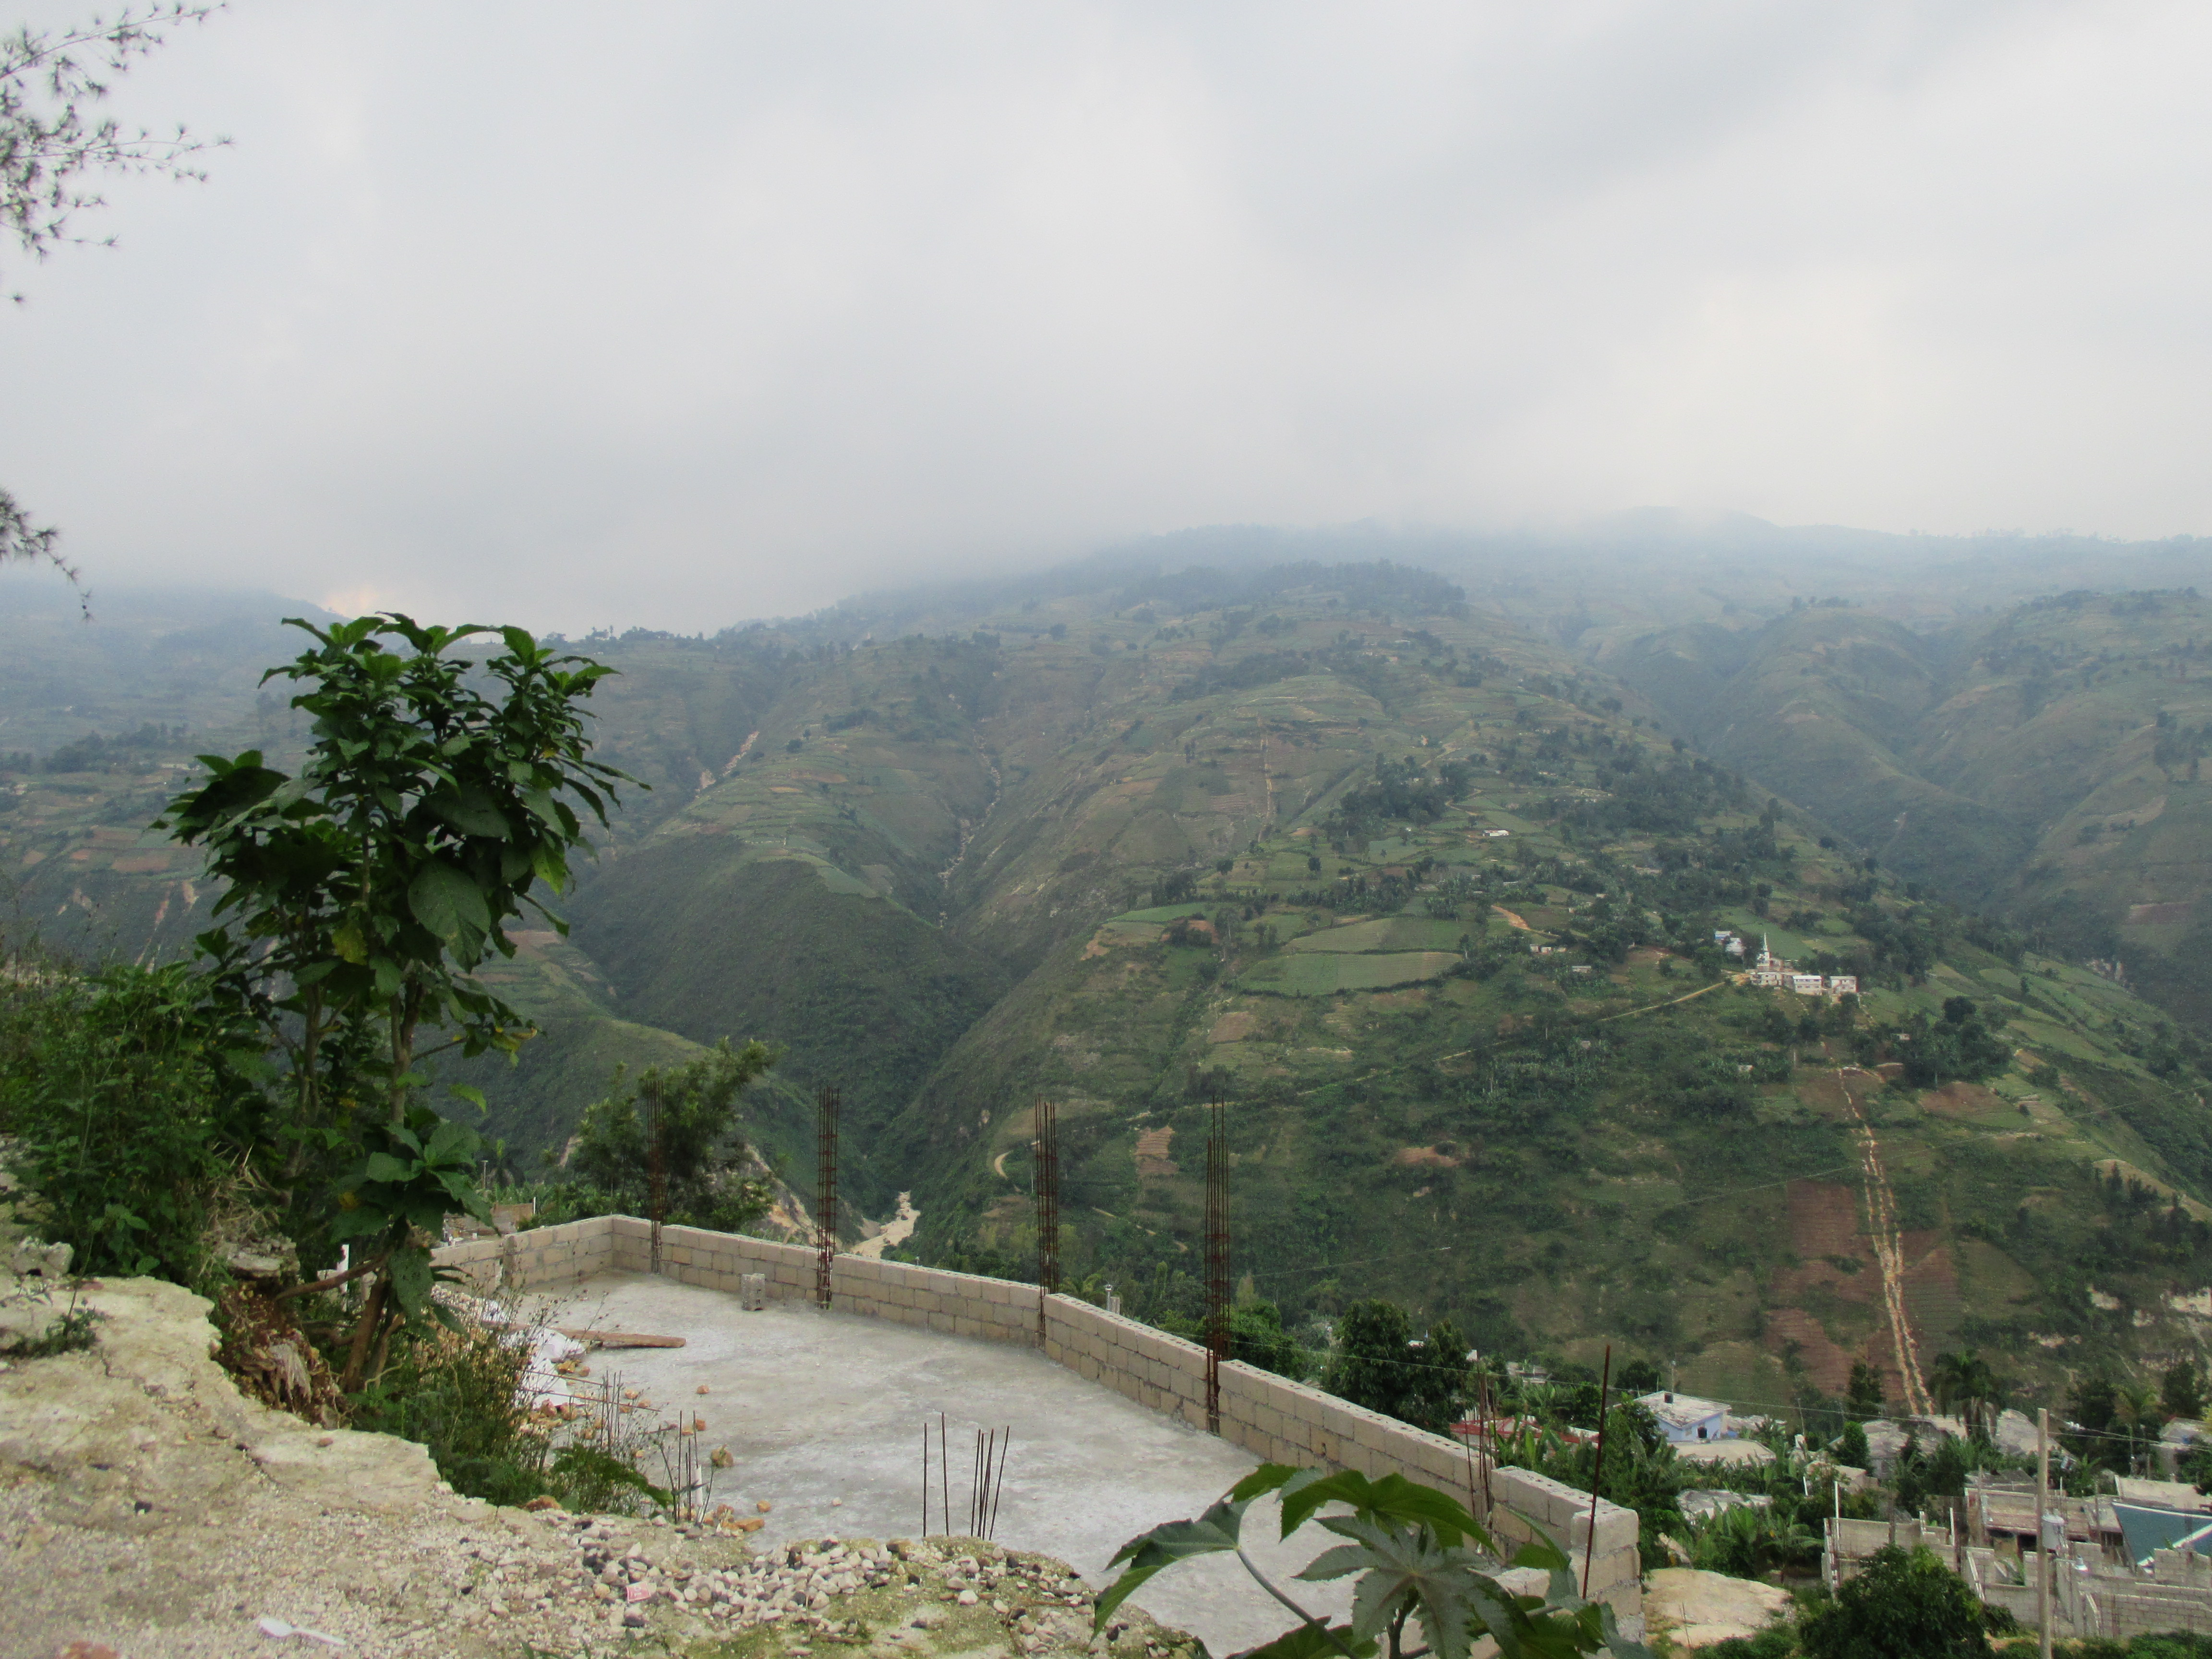 View From Kenscoff - An Upscale Suburb of Port au Prince